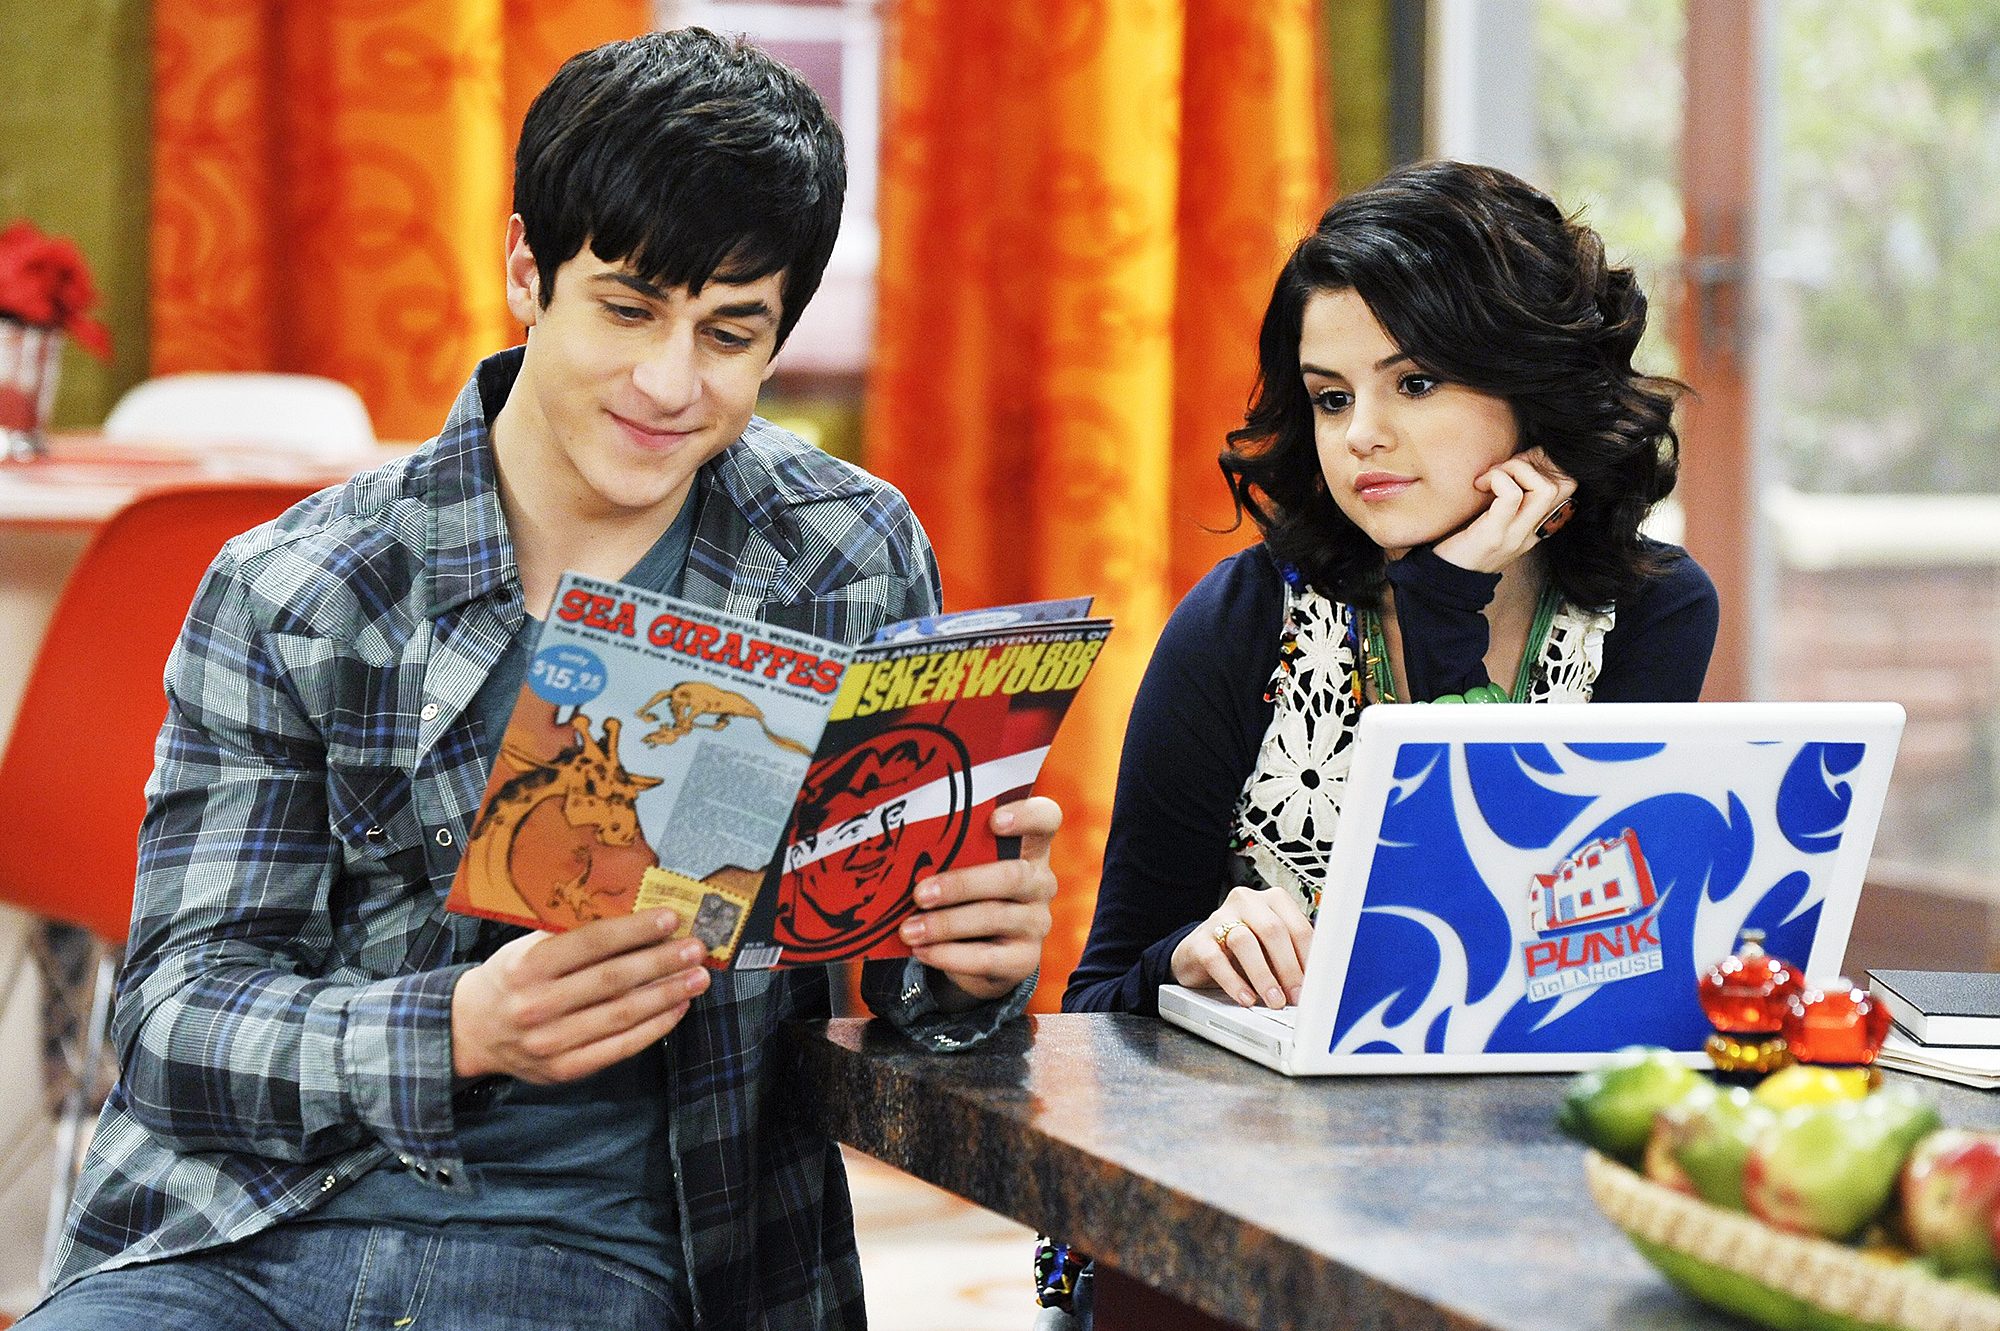 Selena Gomez reunites with David Henrie at Disneyland